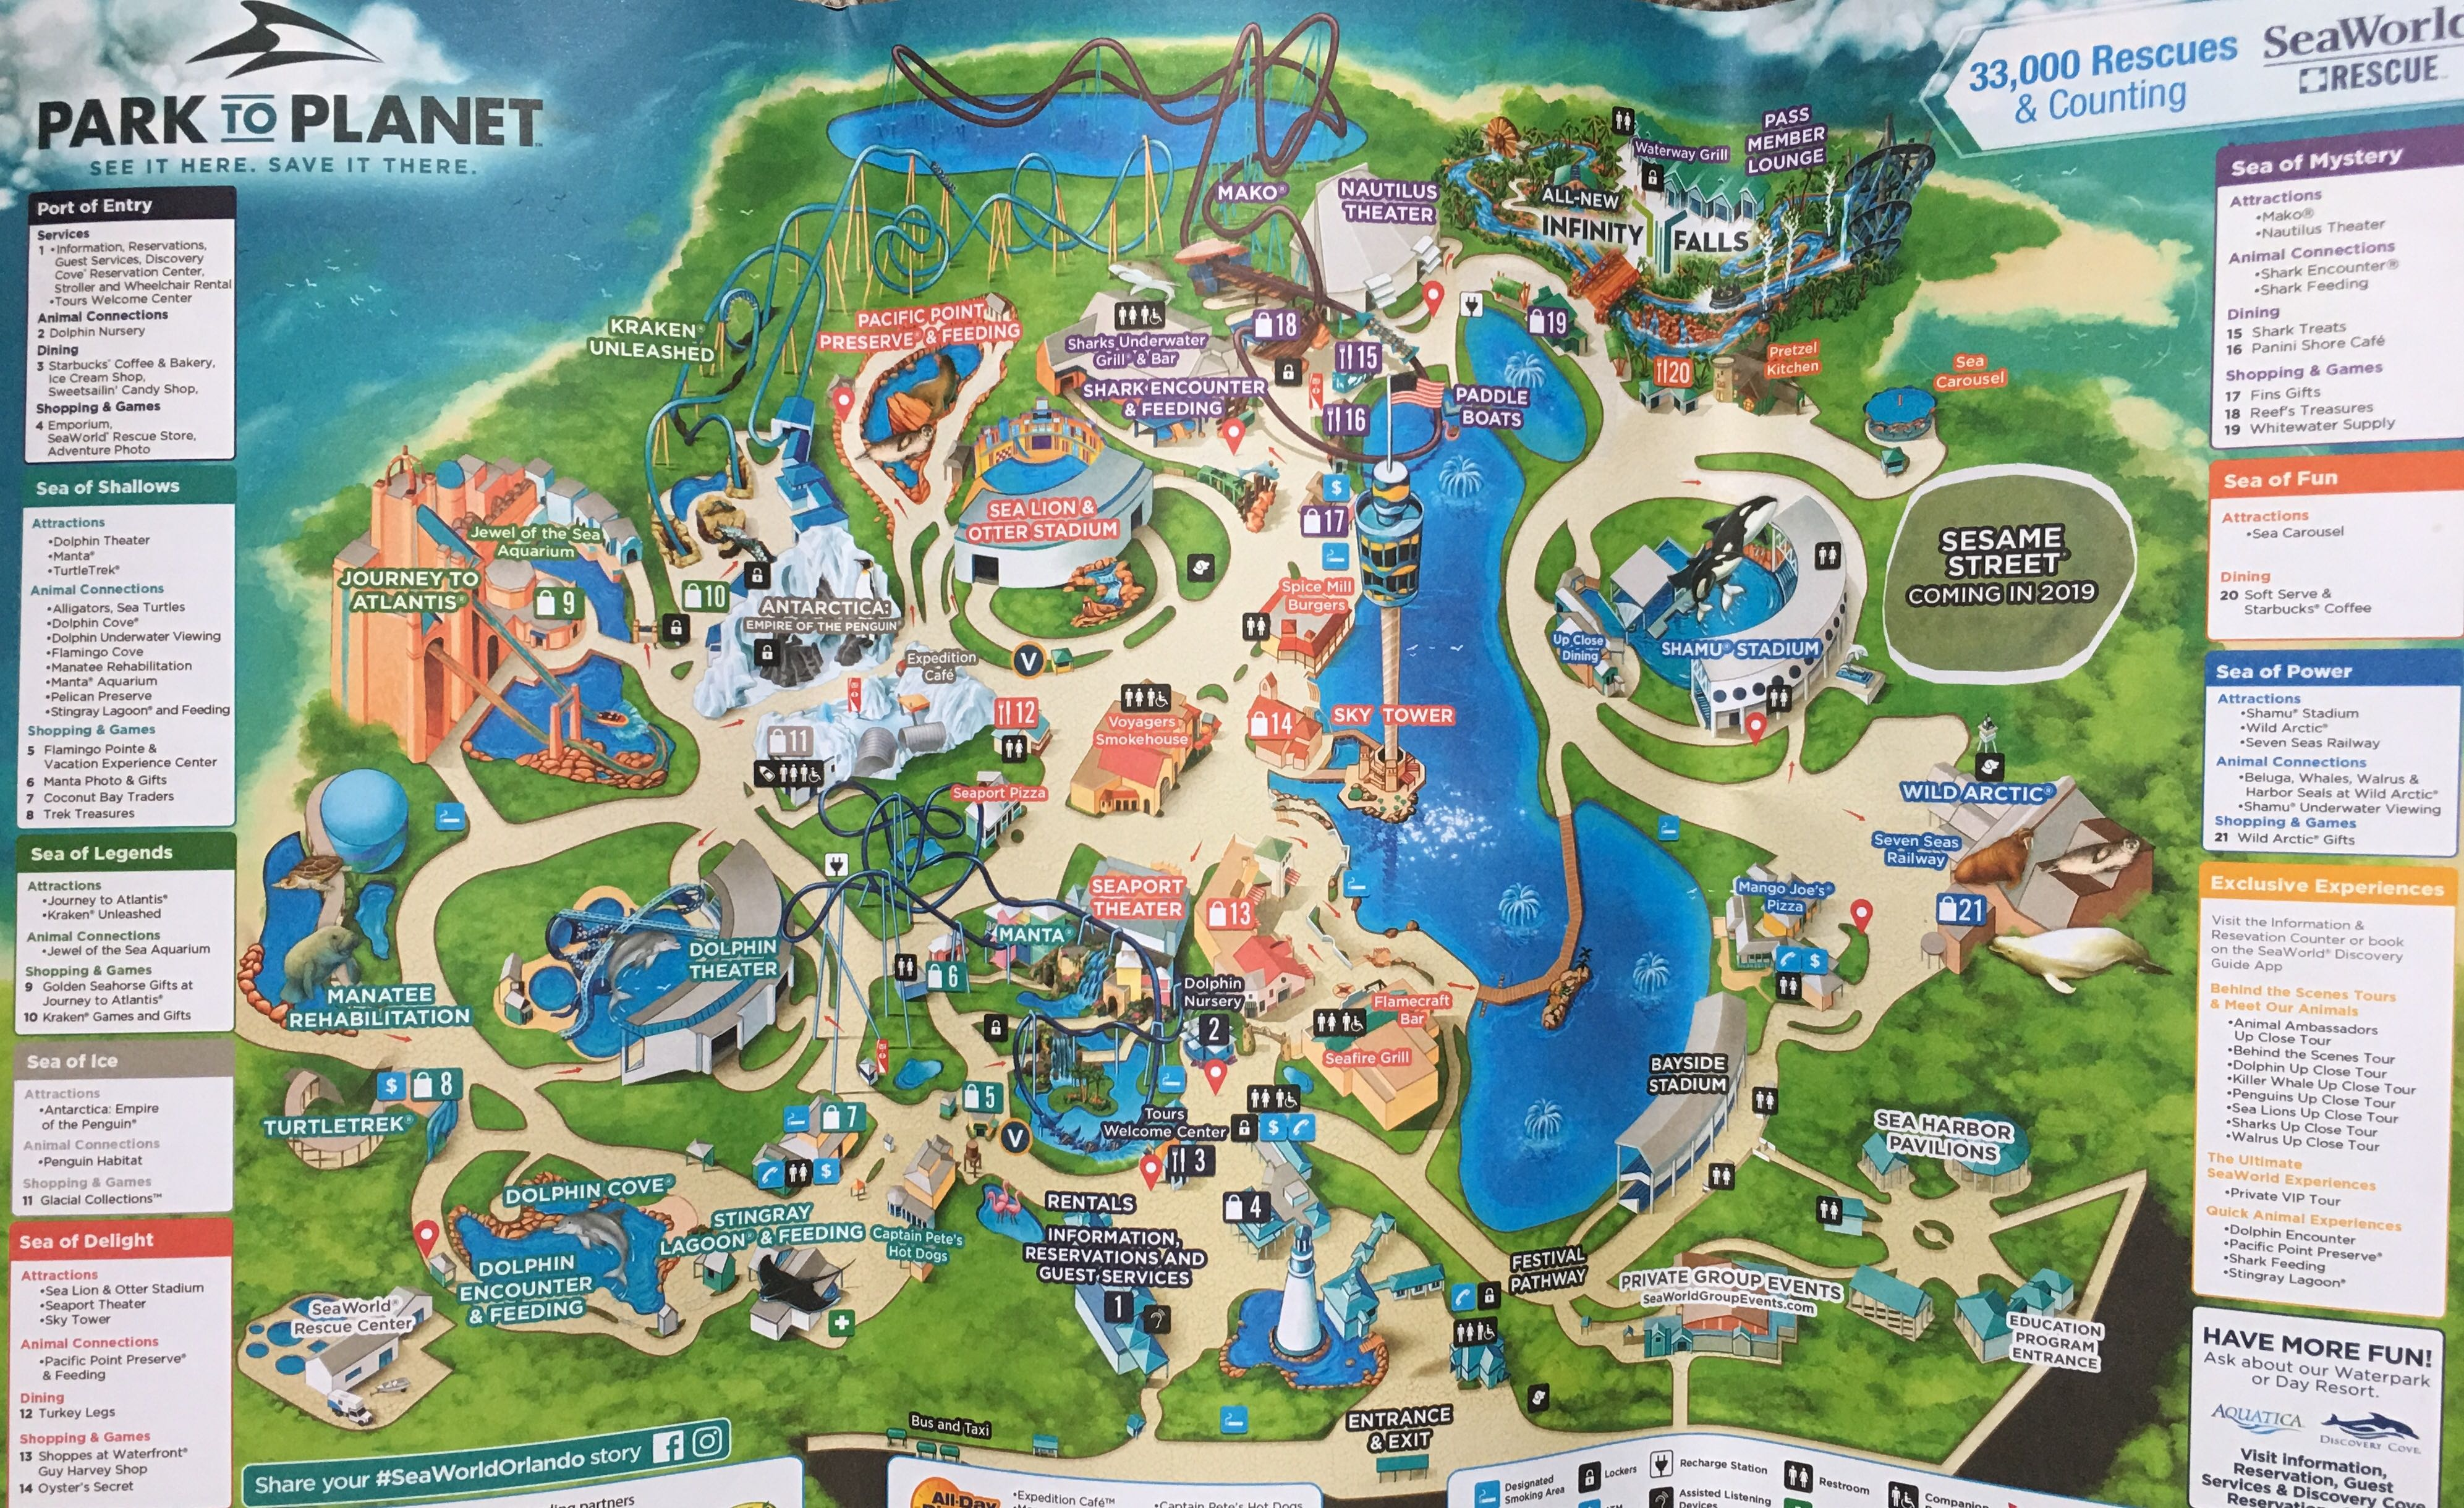 SeaWorld Orlando Map - ThemeParkHipster on knotts berry farm map, universal map, san antonio riverwalk map, disneyland map, aquatica map, michigan adventure map, busch gardens map, disney's animal kingdom map, islands of adventure map, zoo map, cedar point map, san diego map, discovery cove map, disney blizzard beach map,